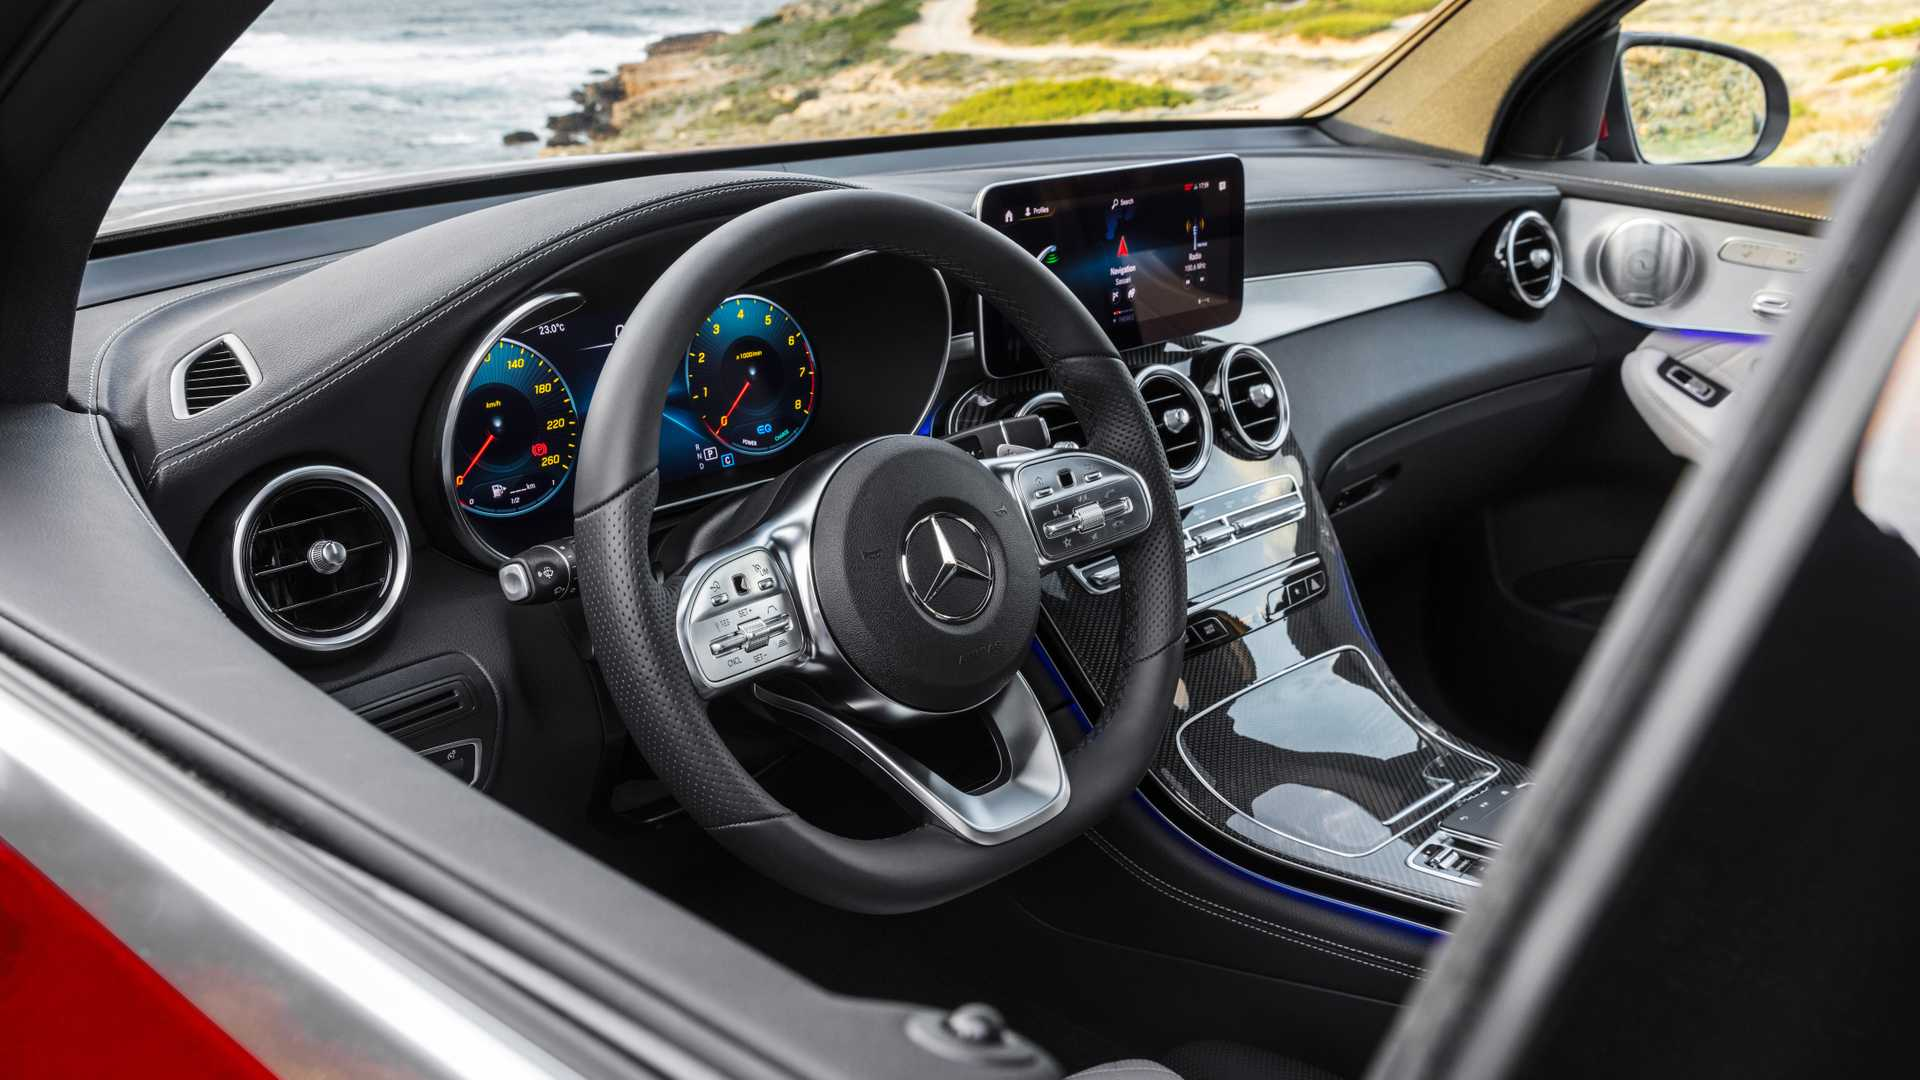 Mercedes Glc Coupe 2019 Interior 03